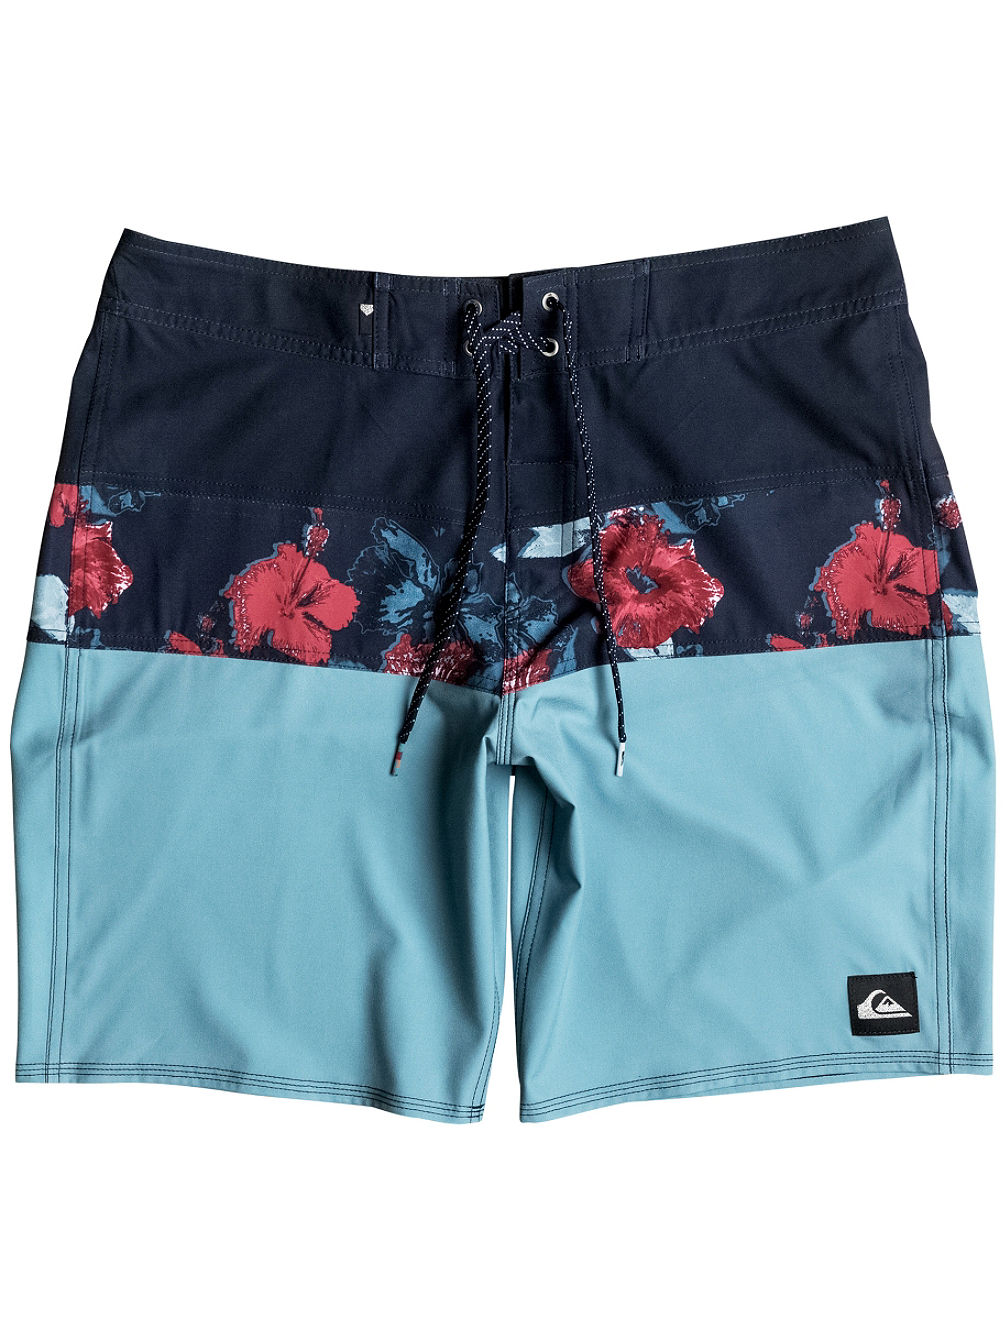 Panel Blocked Vee 19 Boardshorts